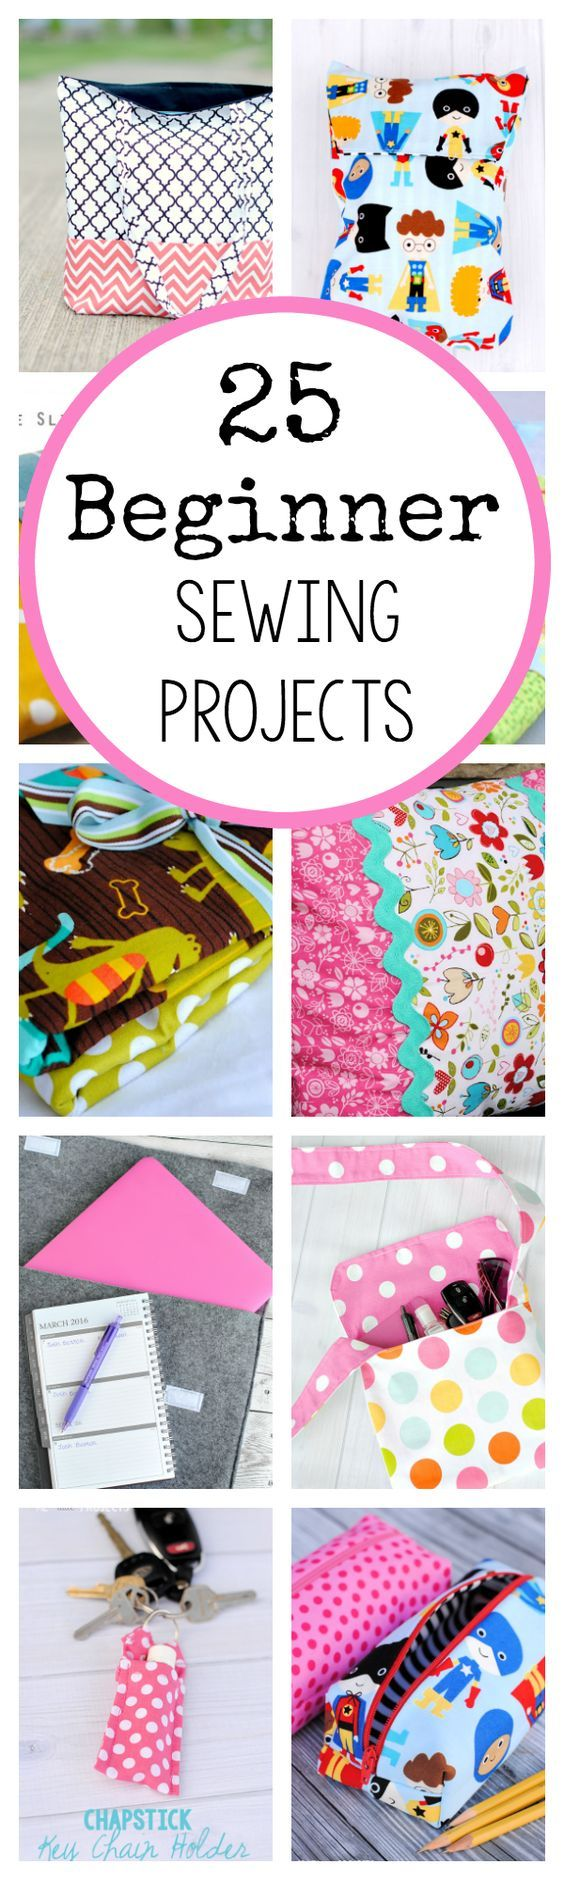 easy beginner sewing projects 17 easy sewing projects to make | these easy sewing projects are perfect for a beginner or someone who is short on time and just wants to make a quick.